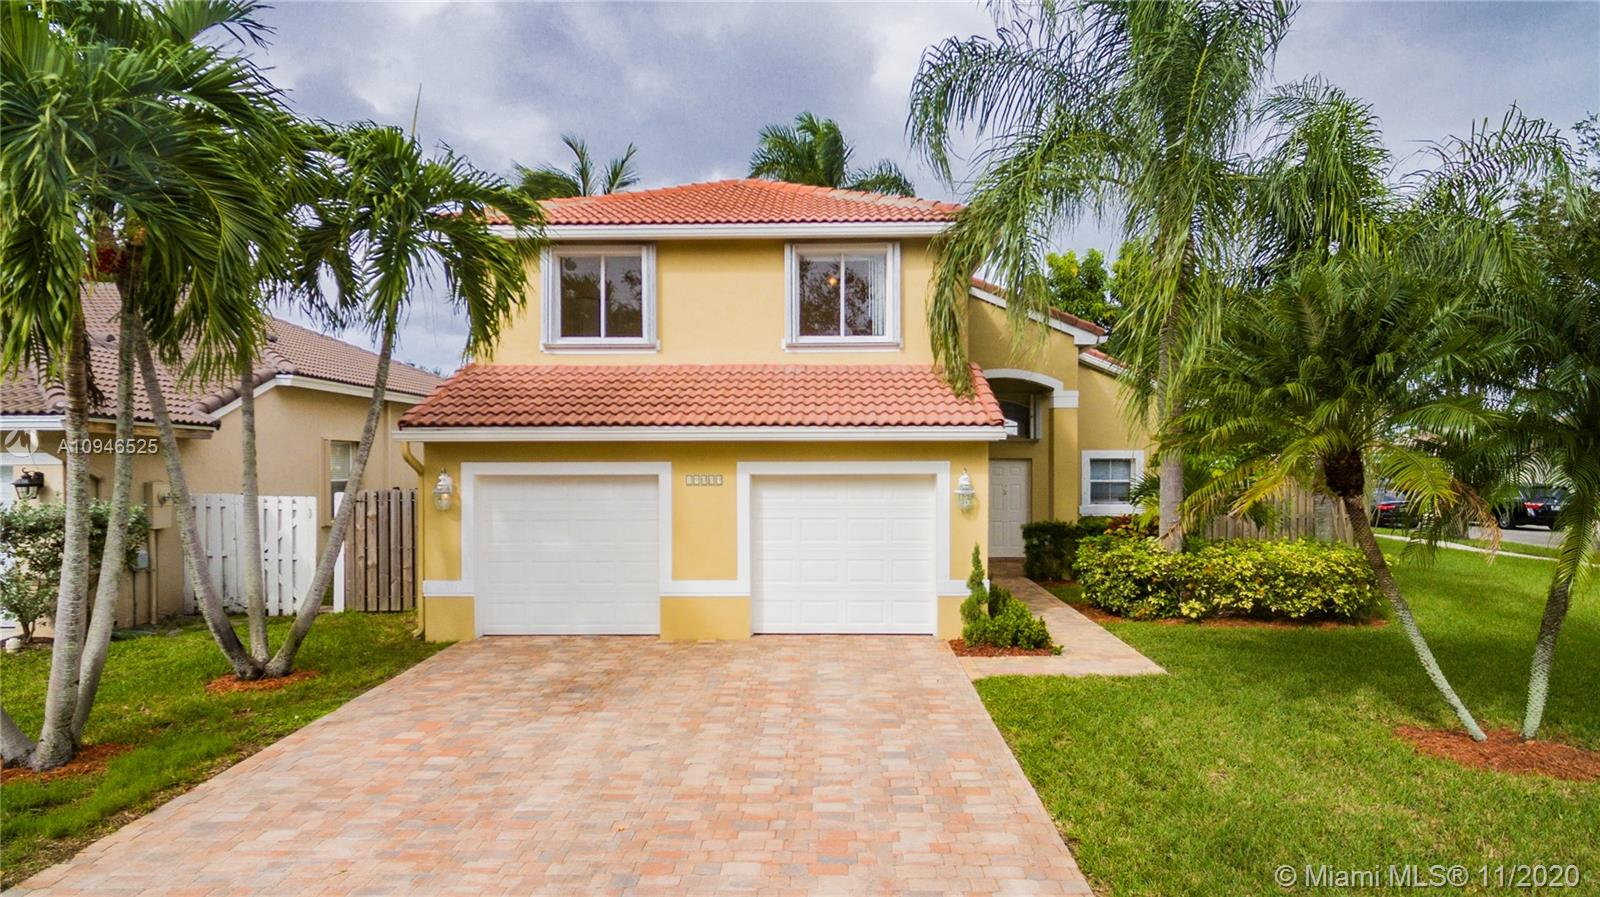 Pristine 2 Story, Corner Lot, 4 bedroom, 2.5 bath, huge 2 Car Garage home in Keystone Lakes, Pembroke Pines.  Kitchen w/ Granite Counters & Stainless Steel Appliances. Porcelain and Tile Throughout.  Fenced Yard w/ Pool, Covered Porch, Accordion Shutters.  Close to expressway.  Excellent schools.  **for showings use ShowingAssist